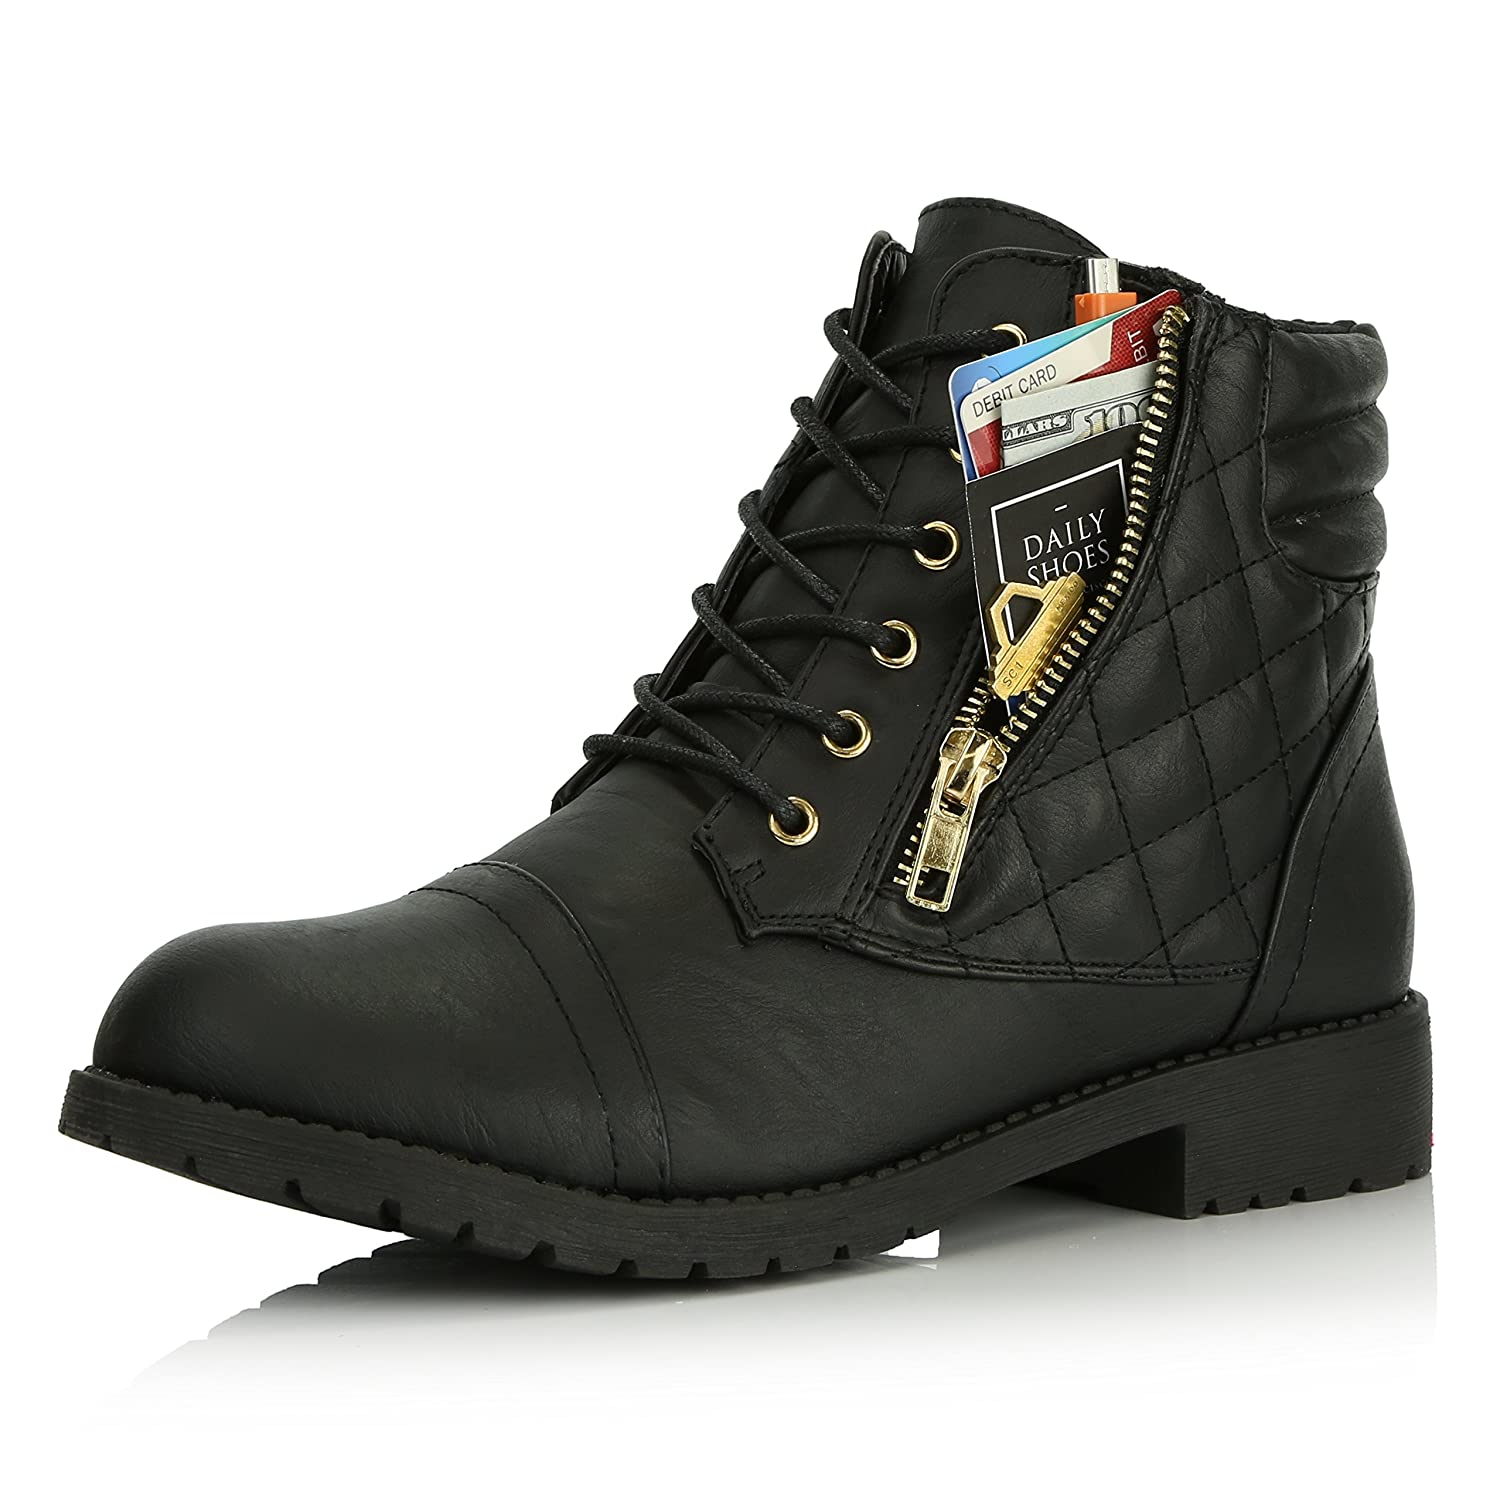 Women's Lace up Combat Boots Ankle High Quilted Credit Card Pocket